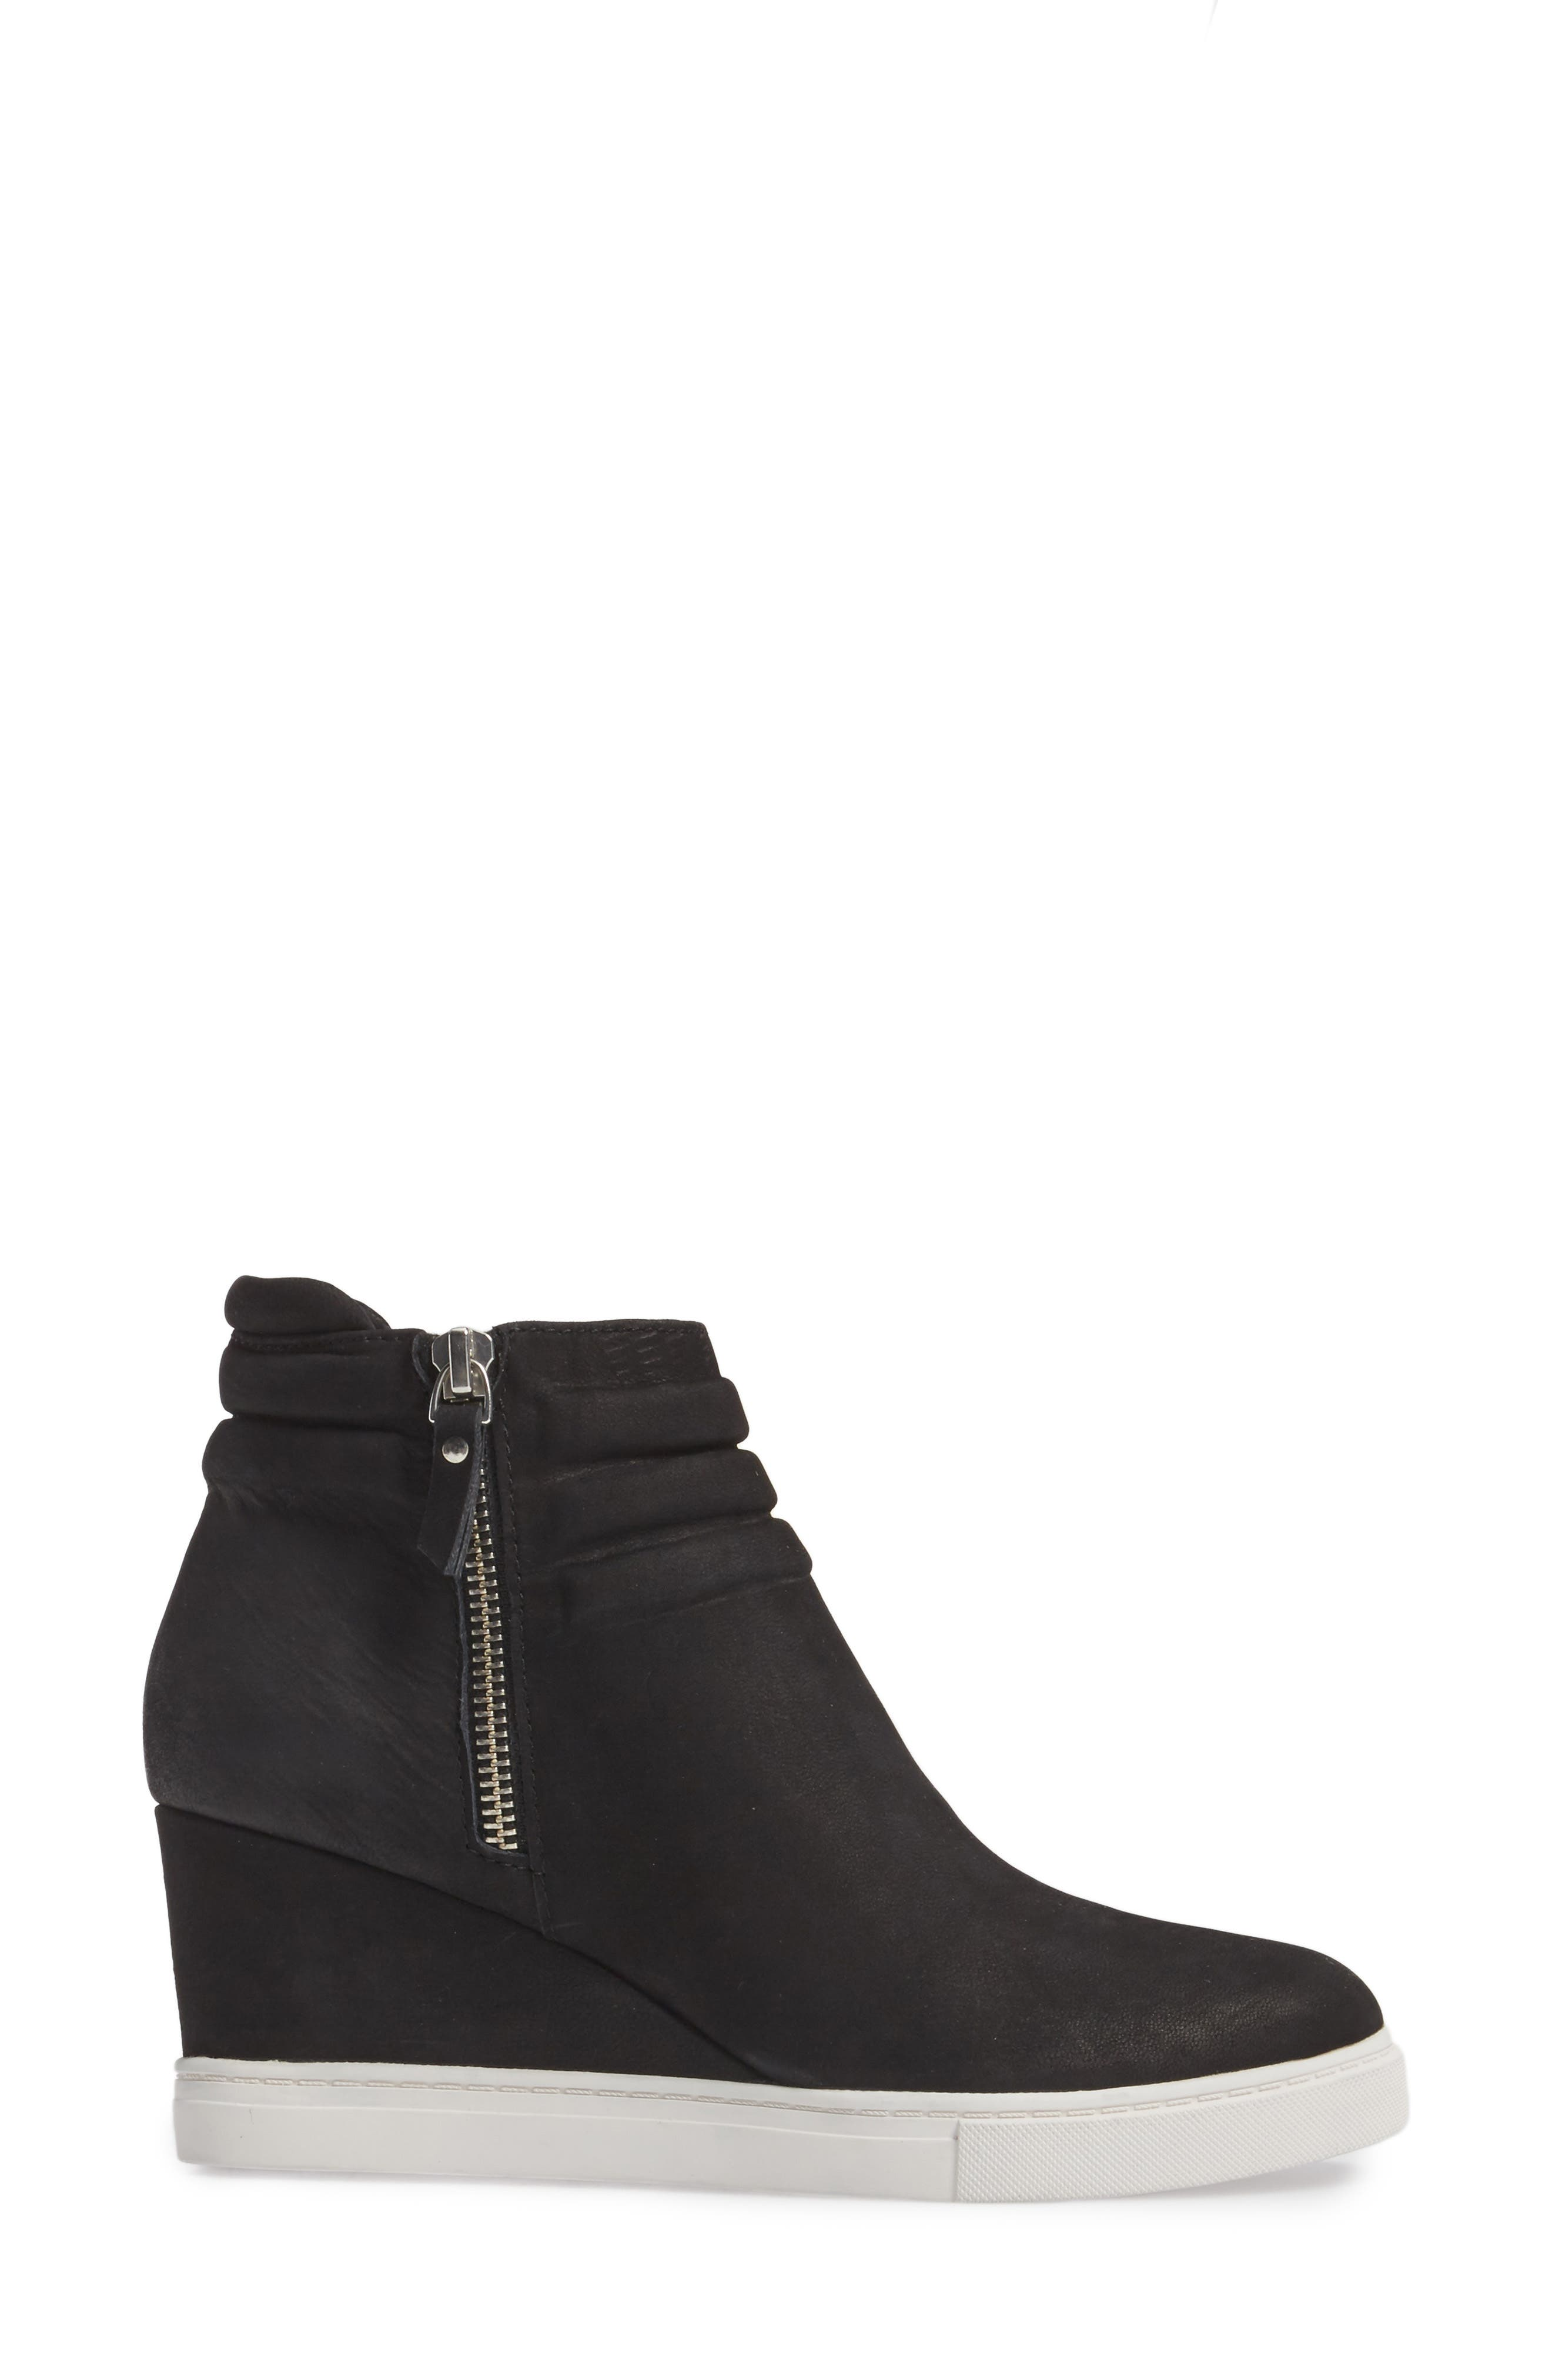 LINEA PAOLO, Frieda Wedge Bootie, Alternate thumbnail 3, color, BLACK LEATHER